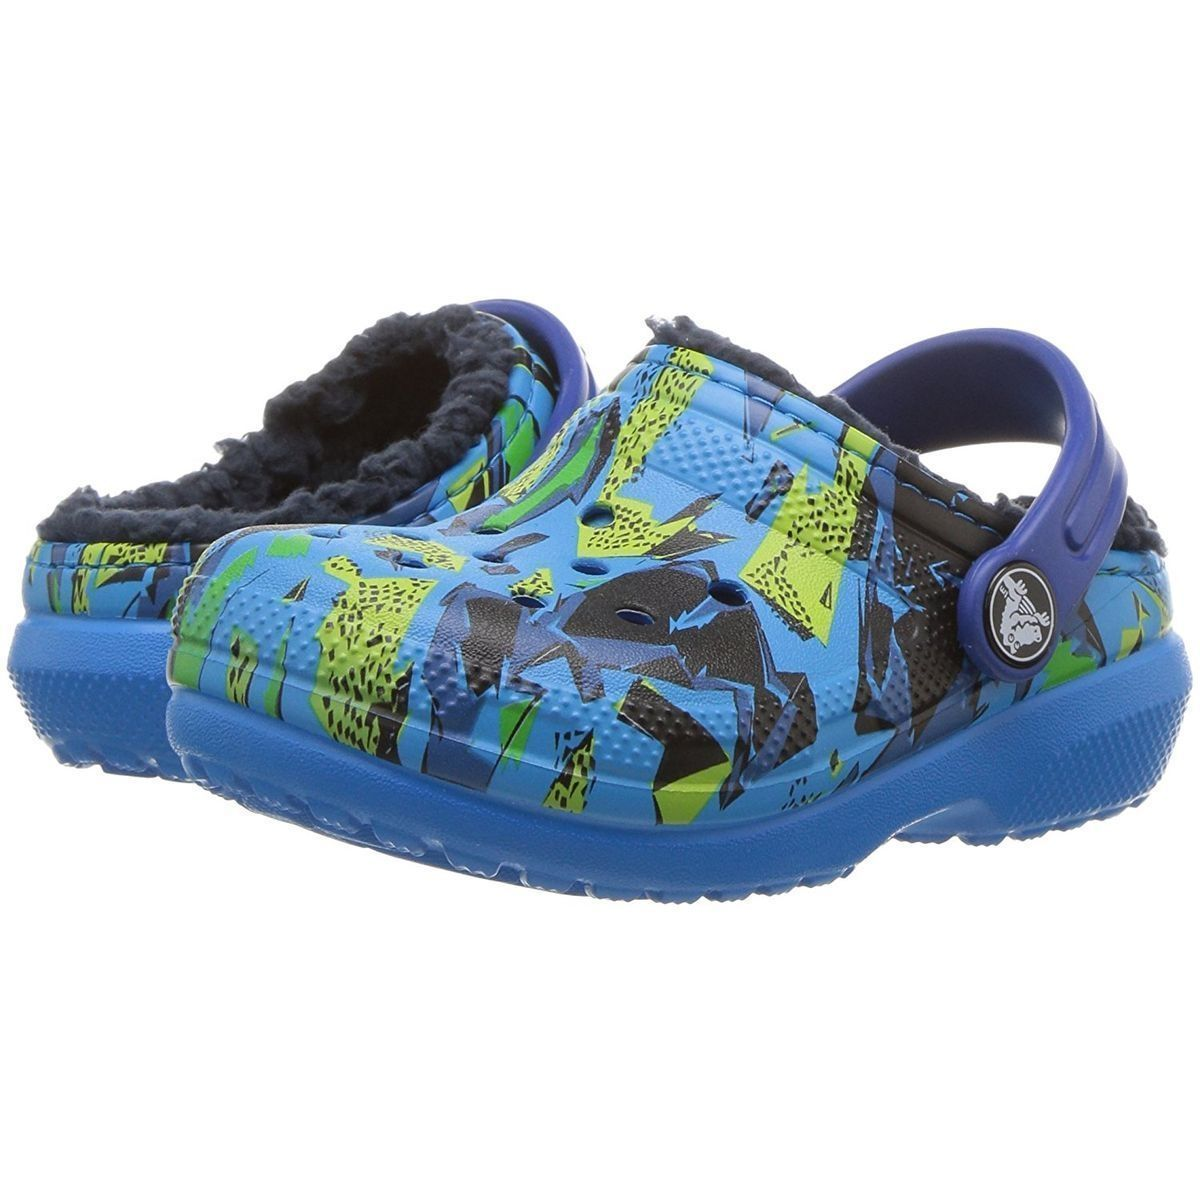 Crocs fille kids classic fuzz lined graphic clog bleu1595001_5